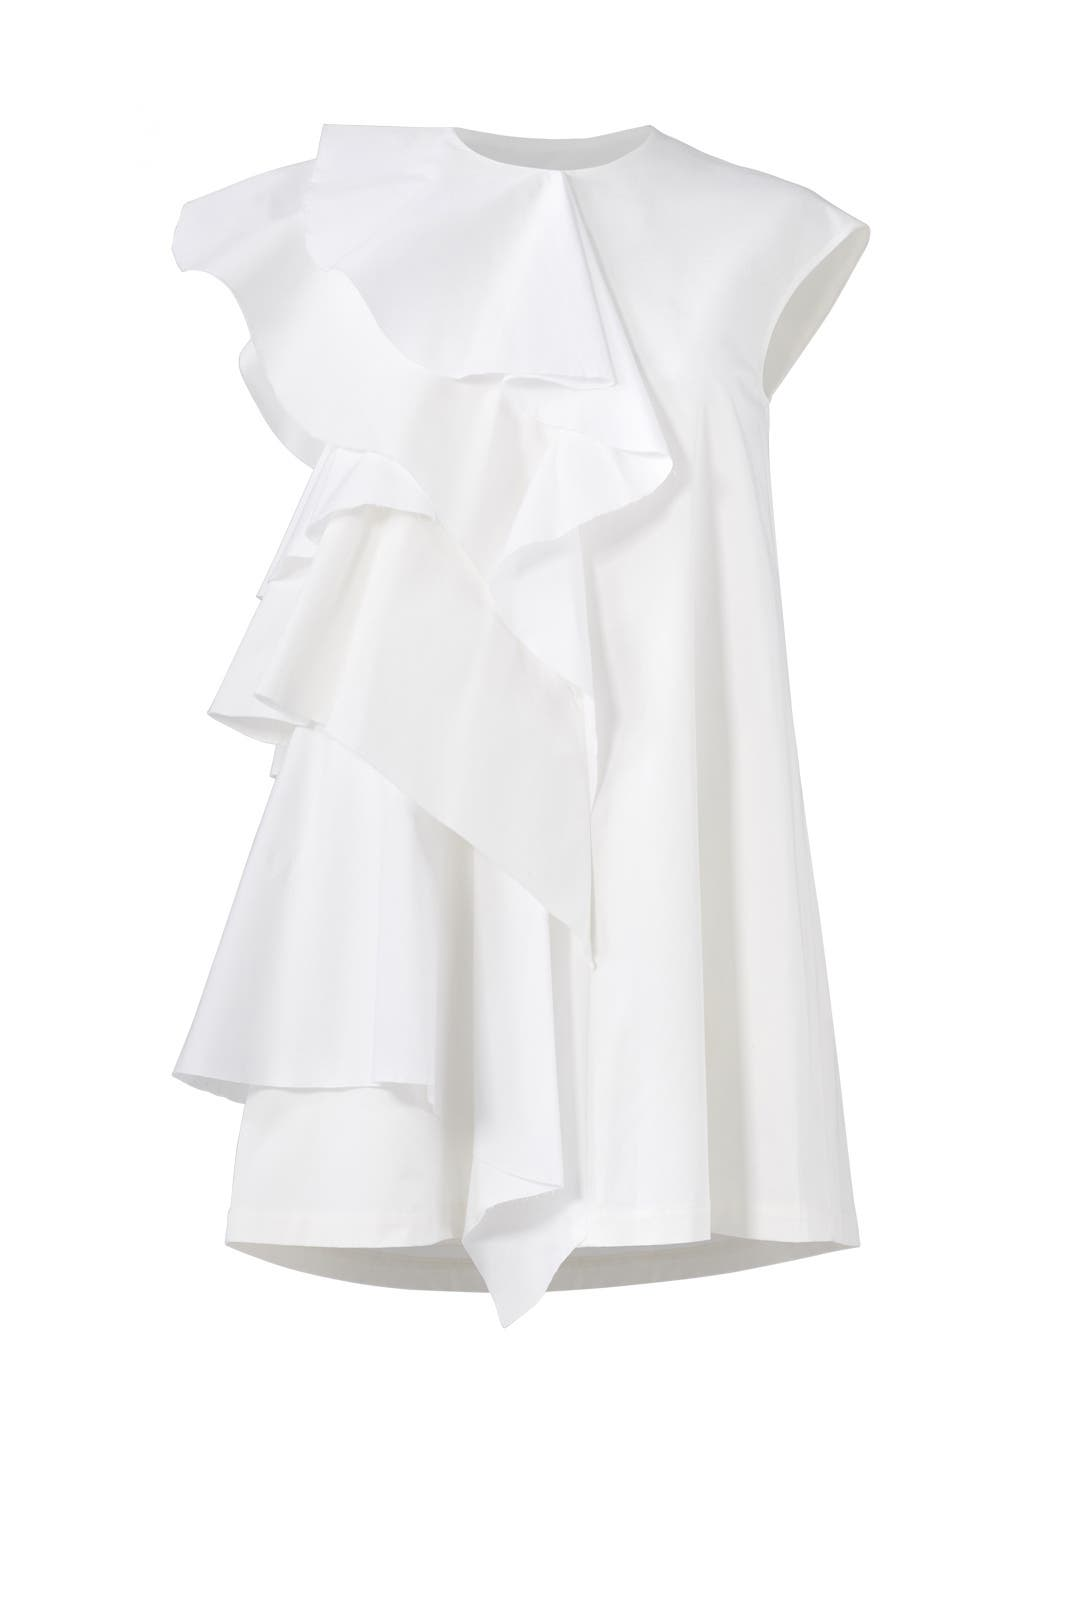 White Ruffle Dress by MSGM for $80 | Rent the Runway